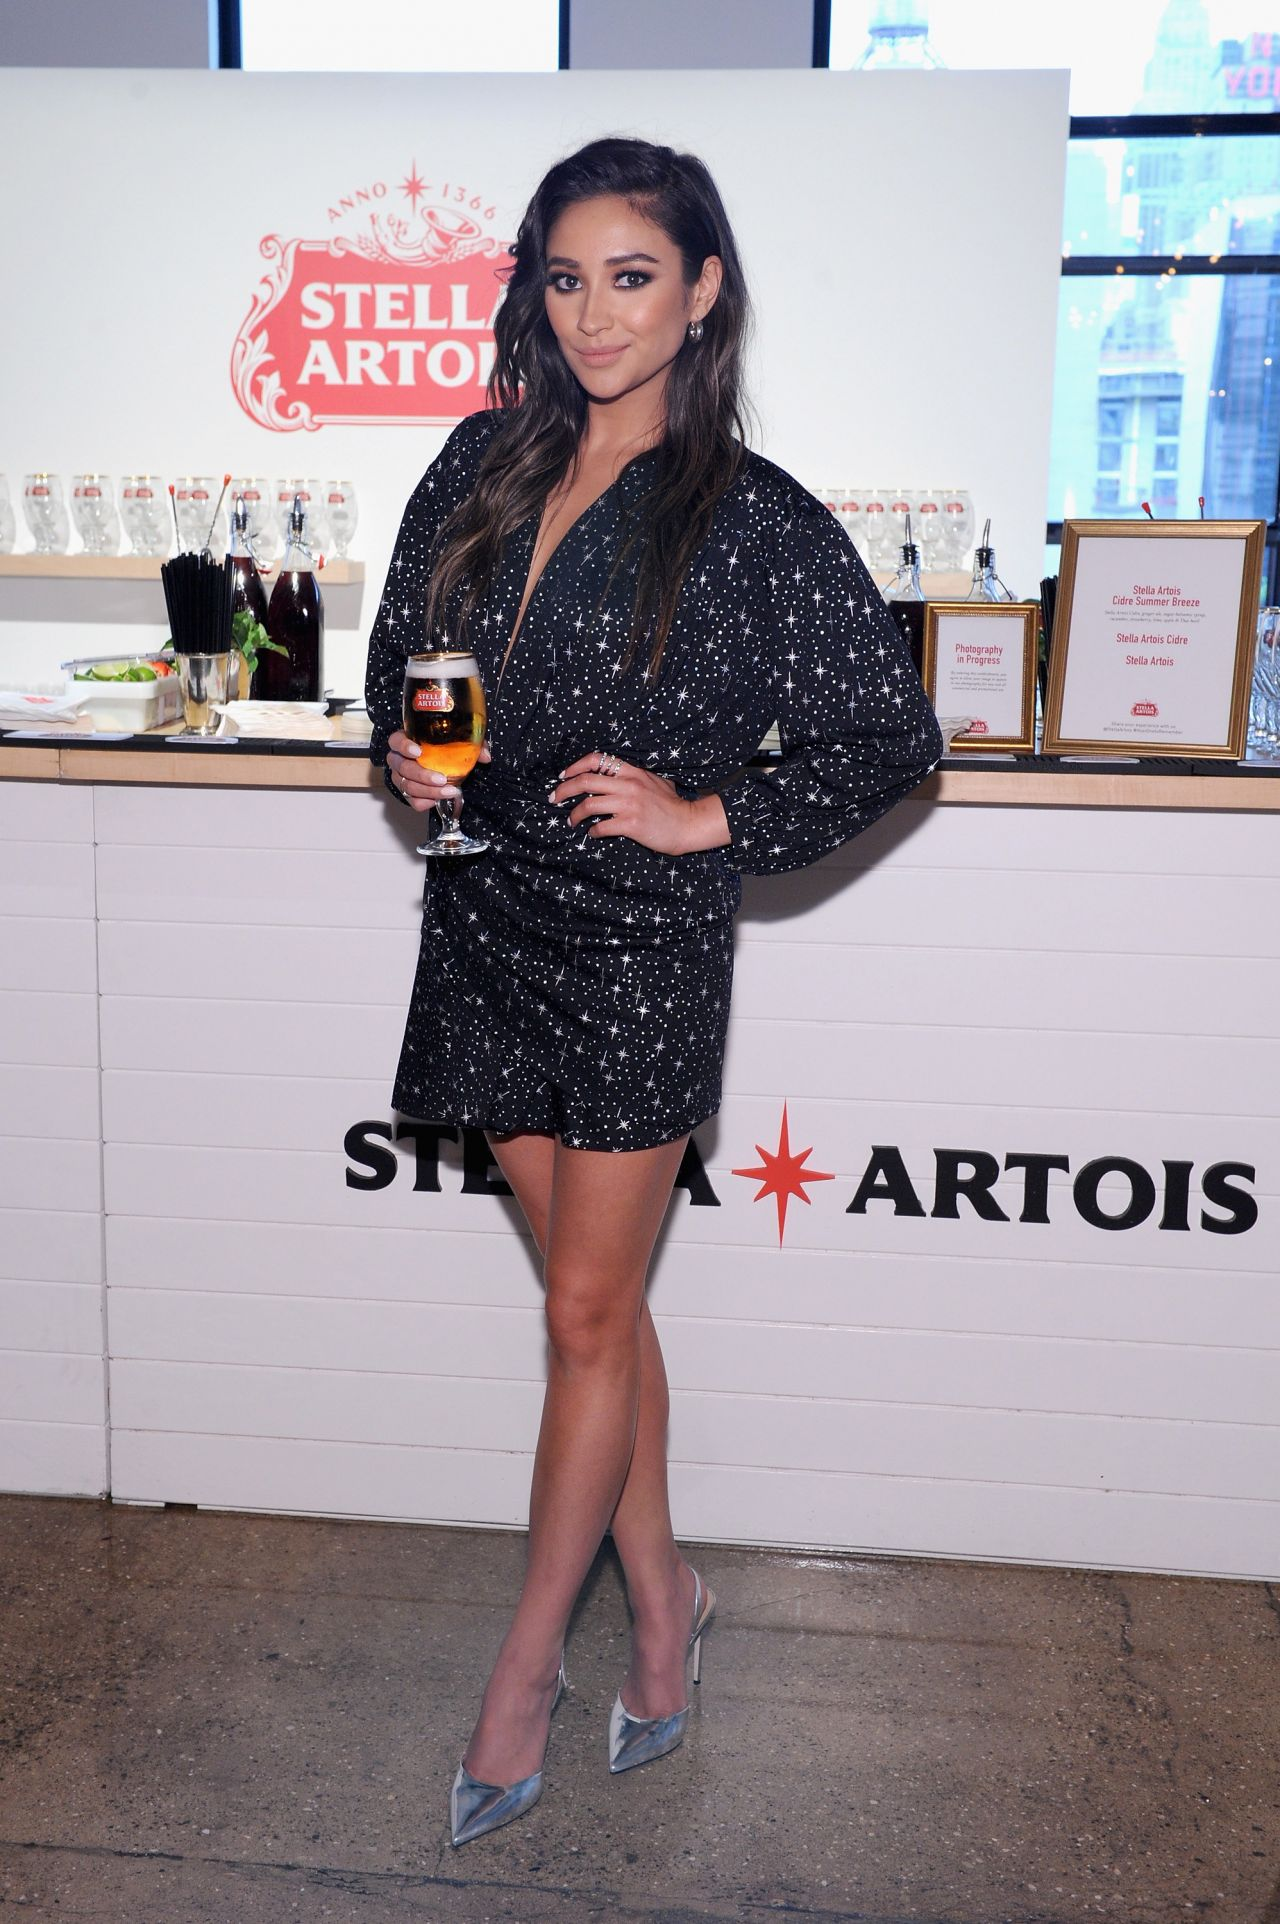 http://celebmafia.com/wp-content/uploads/2017/06/shay-mitchell-host-one-to-remember-at-the-stella-artois-braderie-in-nyc-06-06-2017-1.jpg